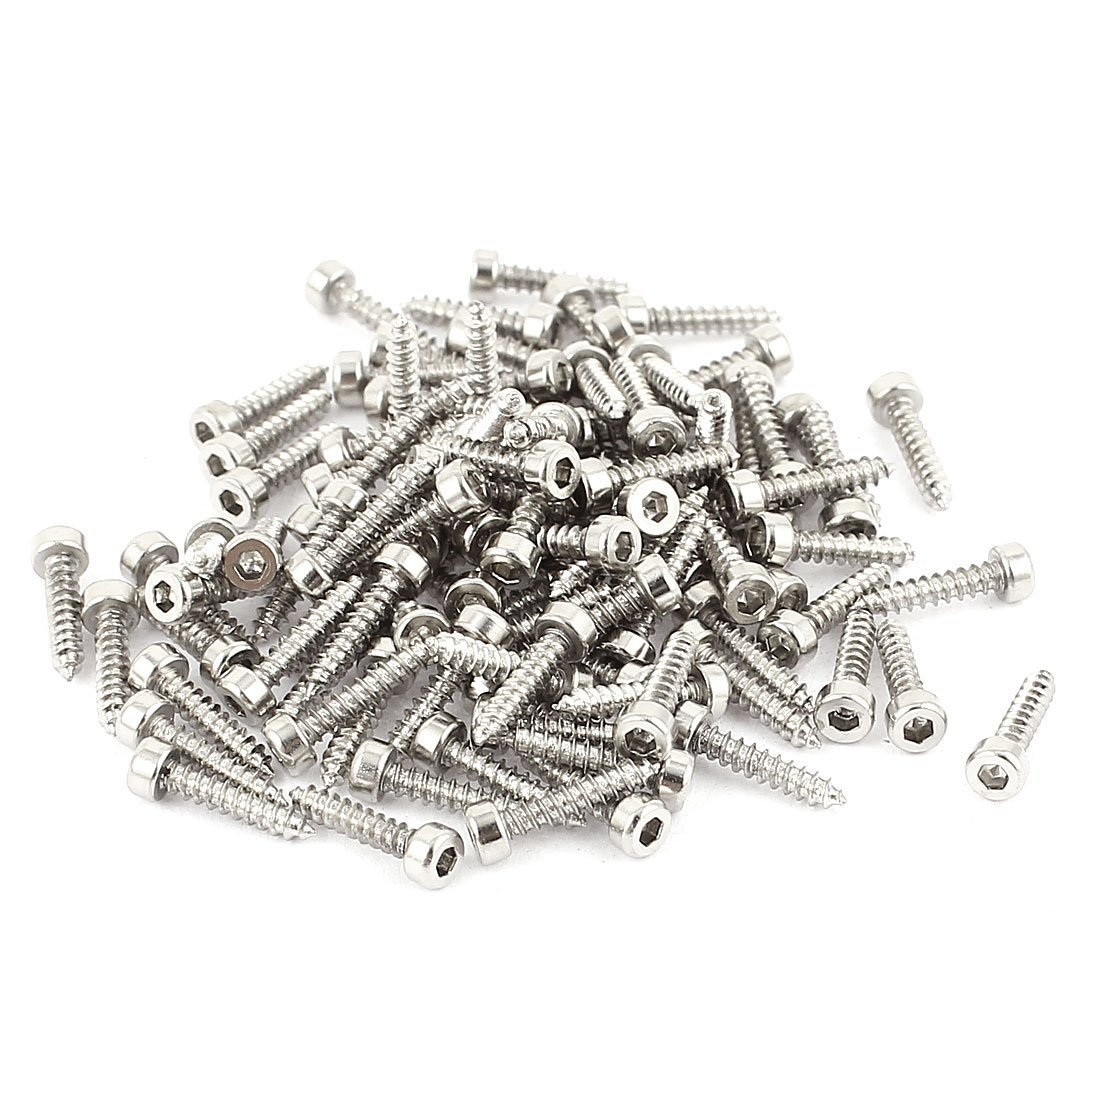 Uxcell a15061900ux0265 2 mm x 10 mm Full Thread Hex Head Self Tapping Screws 100 Pcs Pack of 100